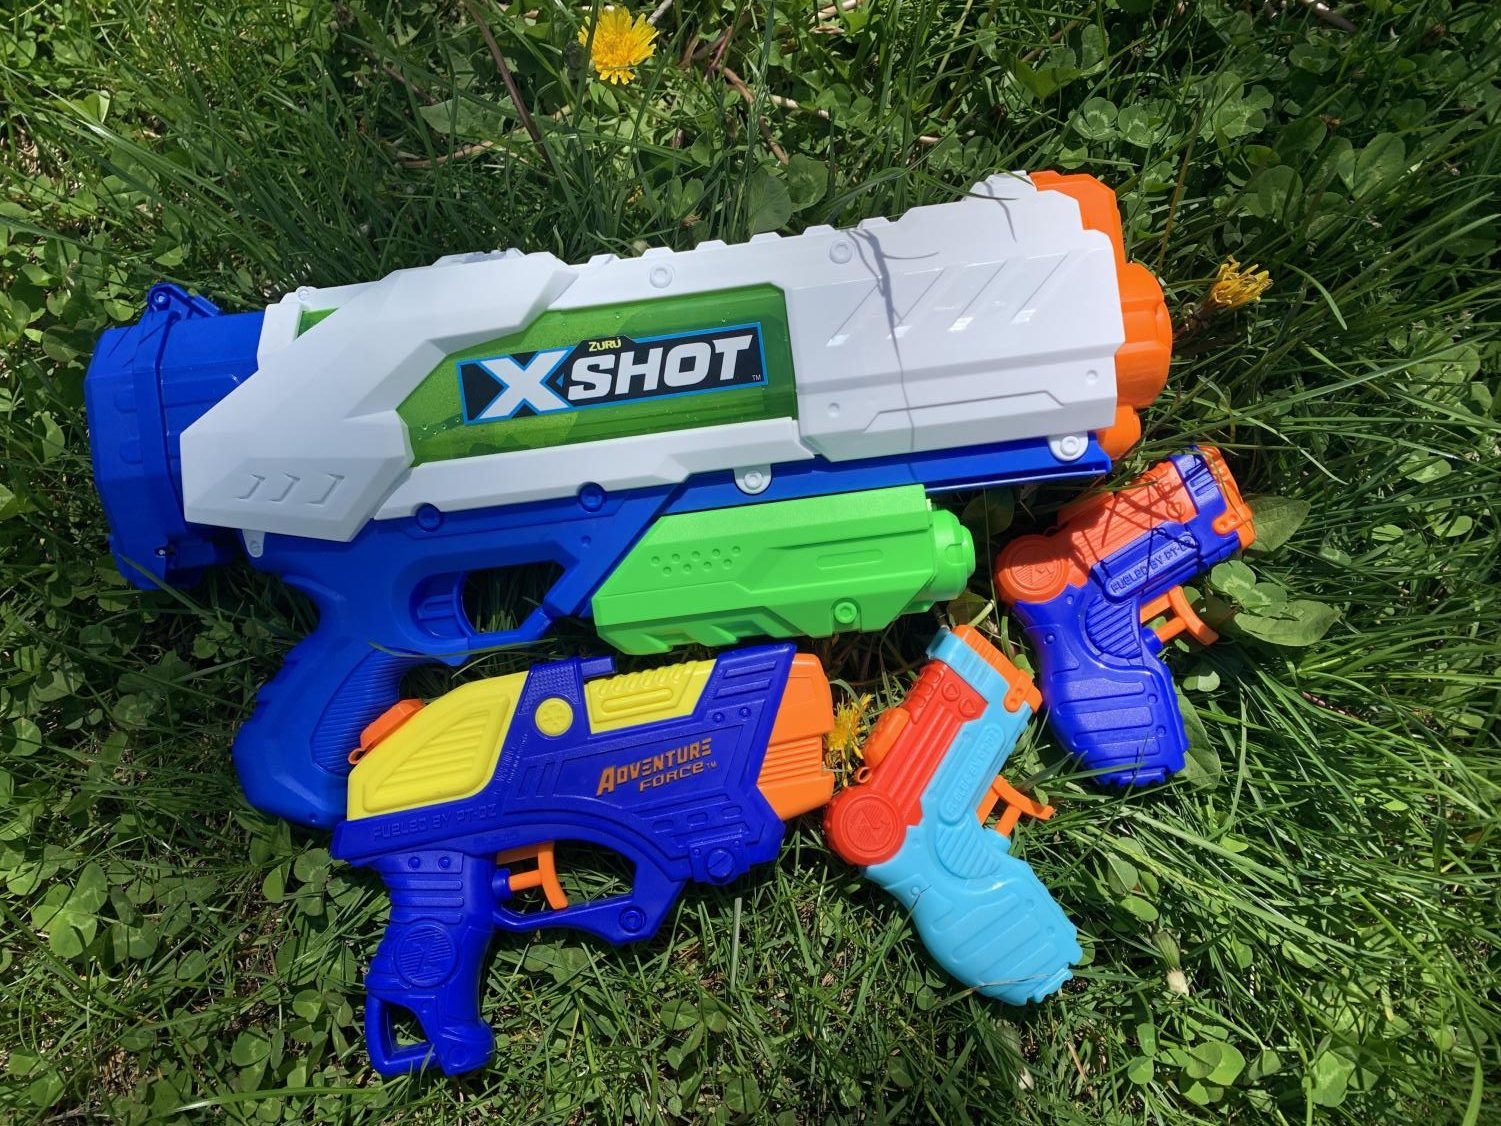 Senior participants in Senior Assassin gather a variety of water guns in order to be best prepared for the game.